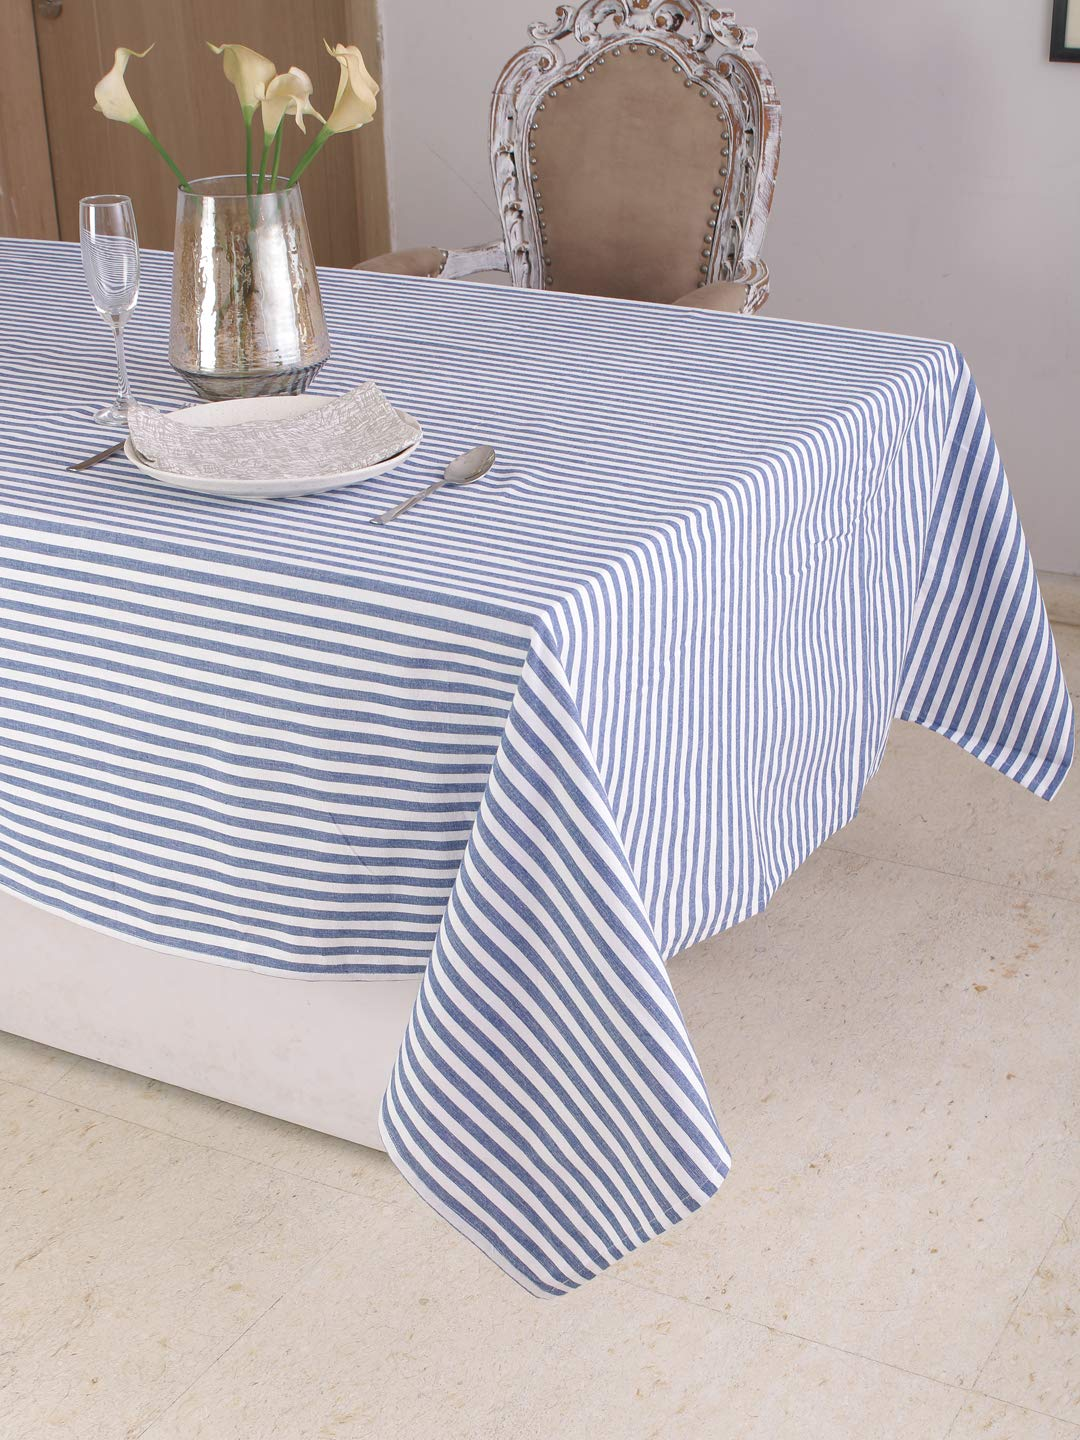 Cotton Rectangular Table Cloth (60 x 104 Inches), Blue & White Stripe - Perfect For Spring, Summer, Holidays - Christmas And For Everyday Use